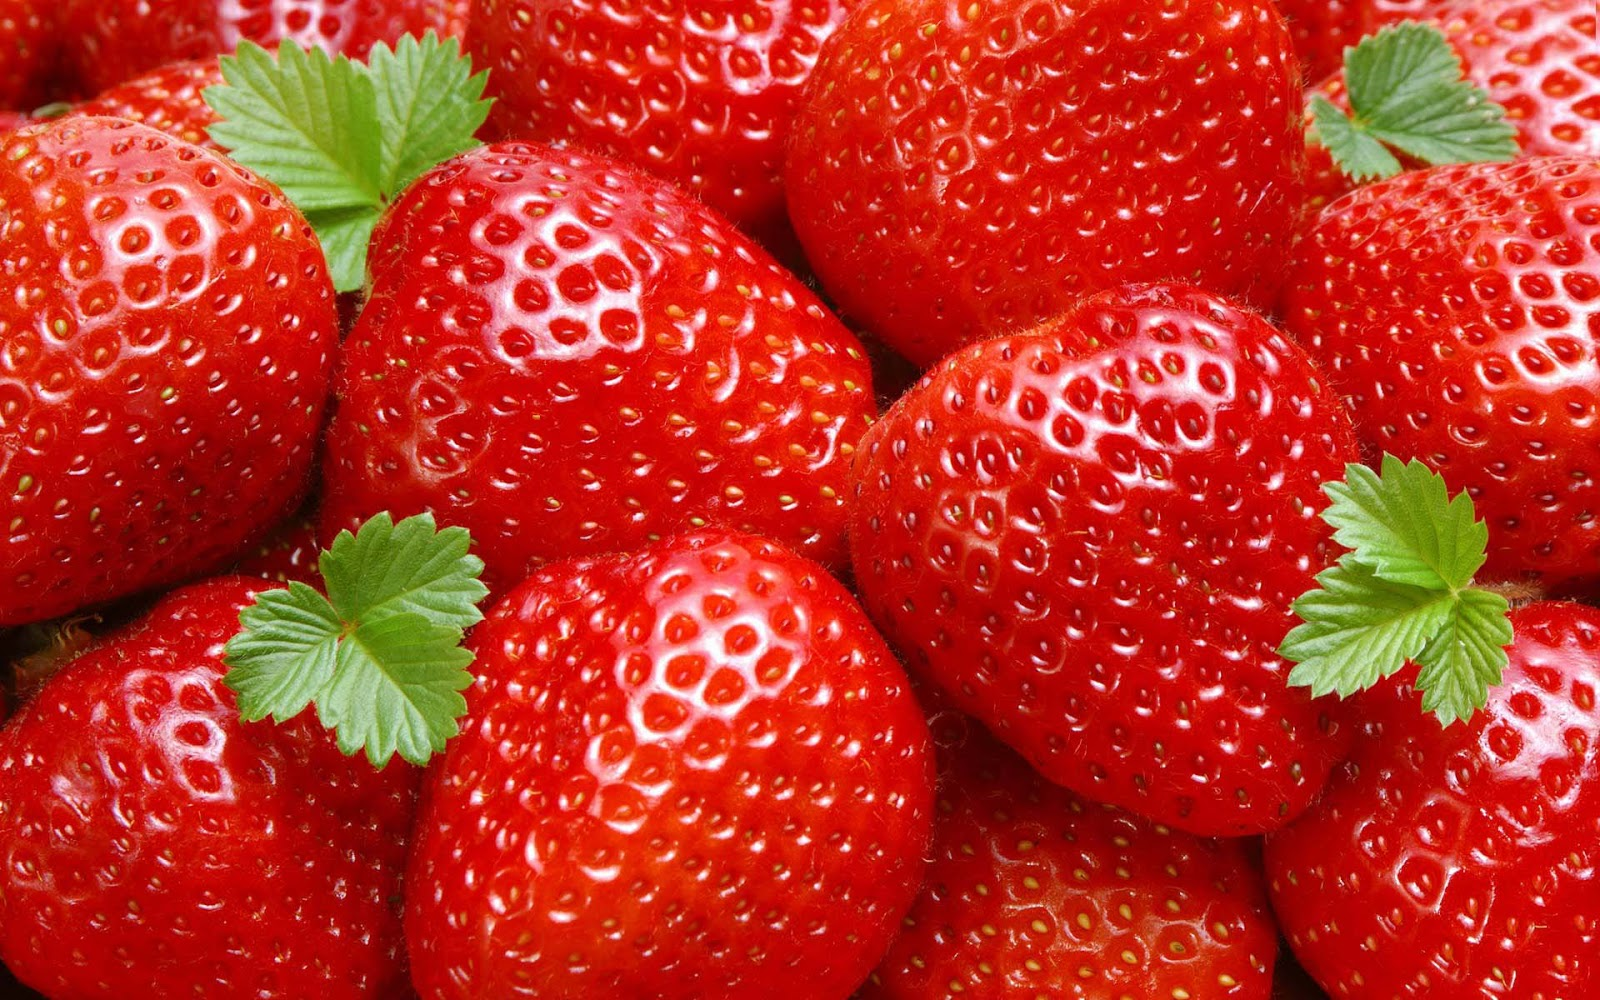 Beautiful fruits wallpapers - Beautiful Strawberries Widescreen Images